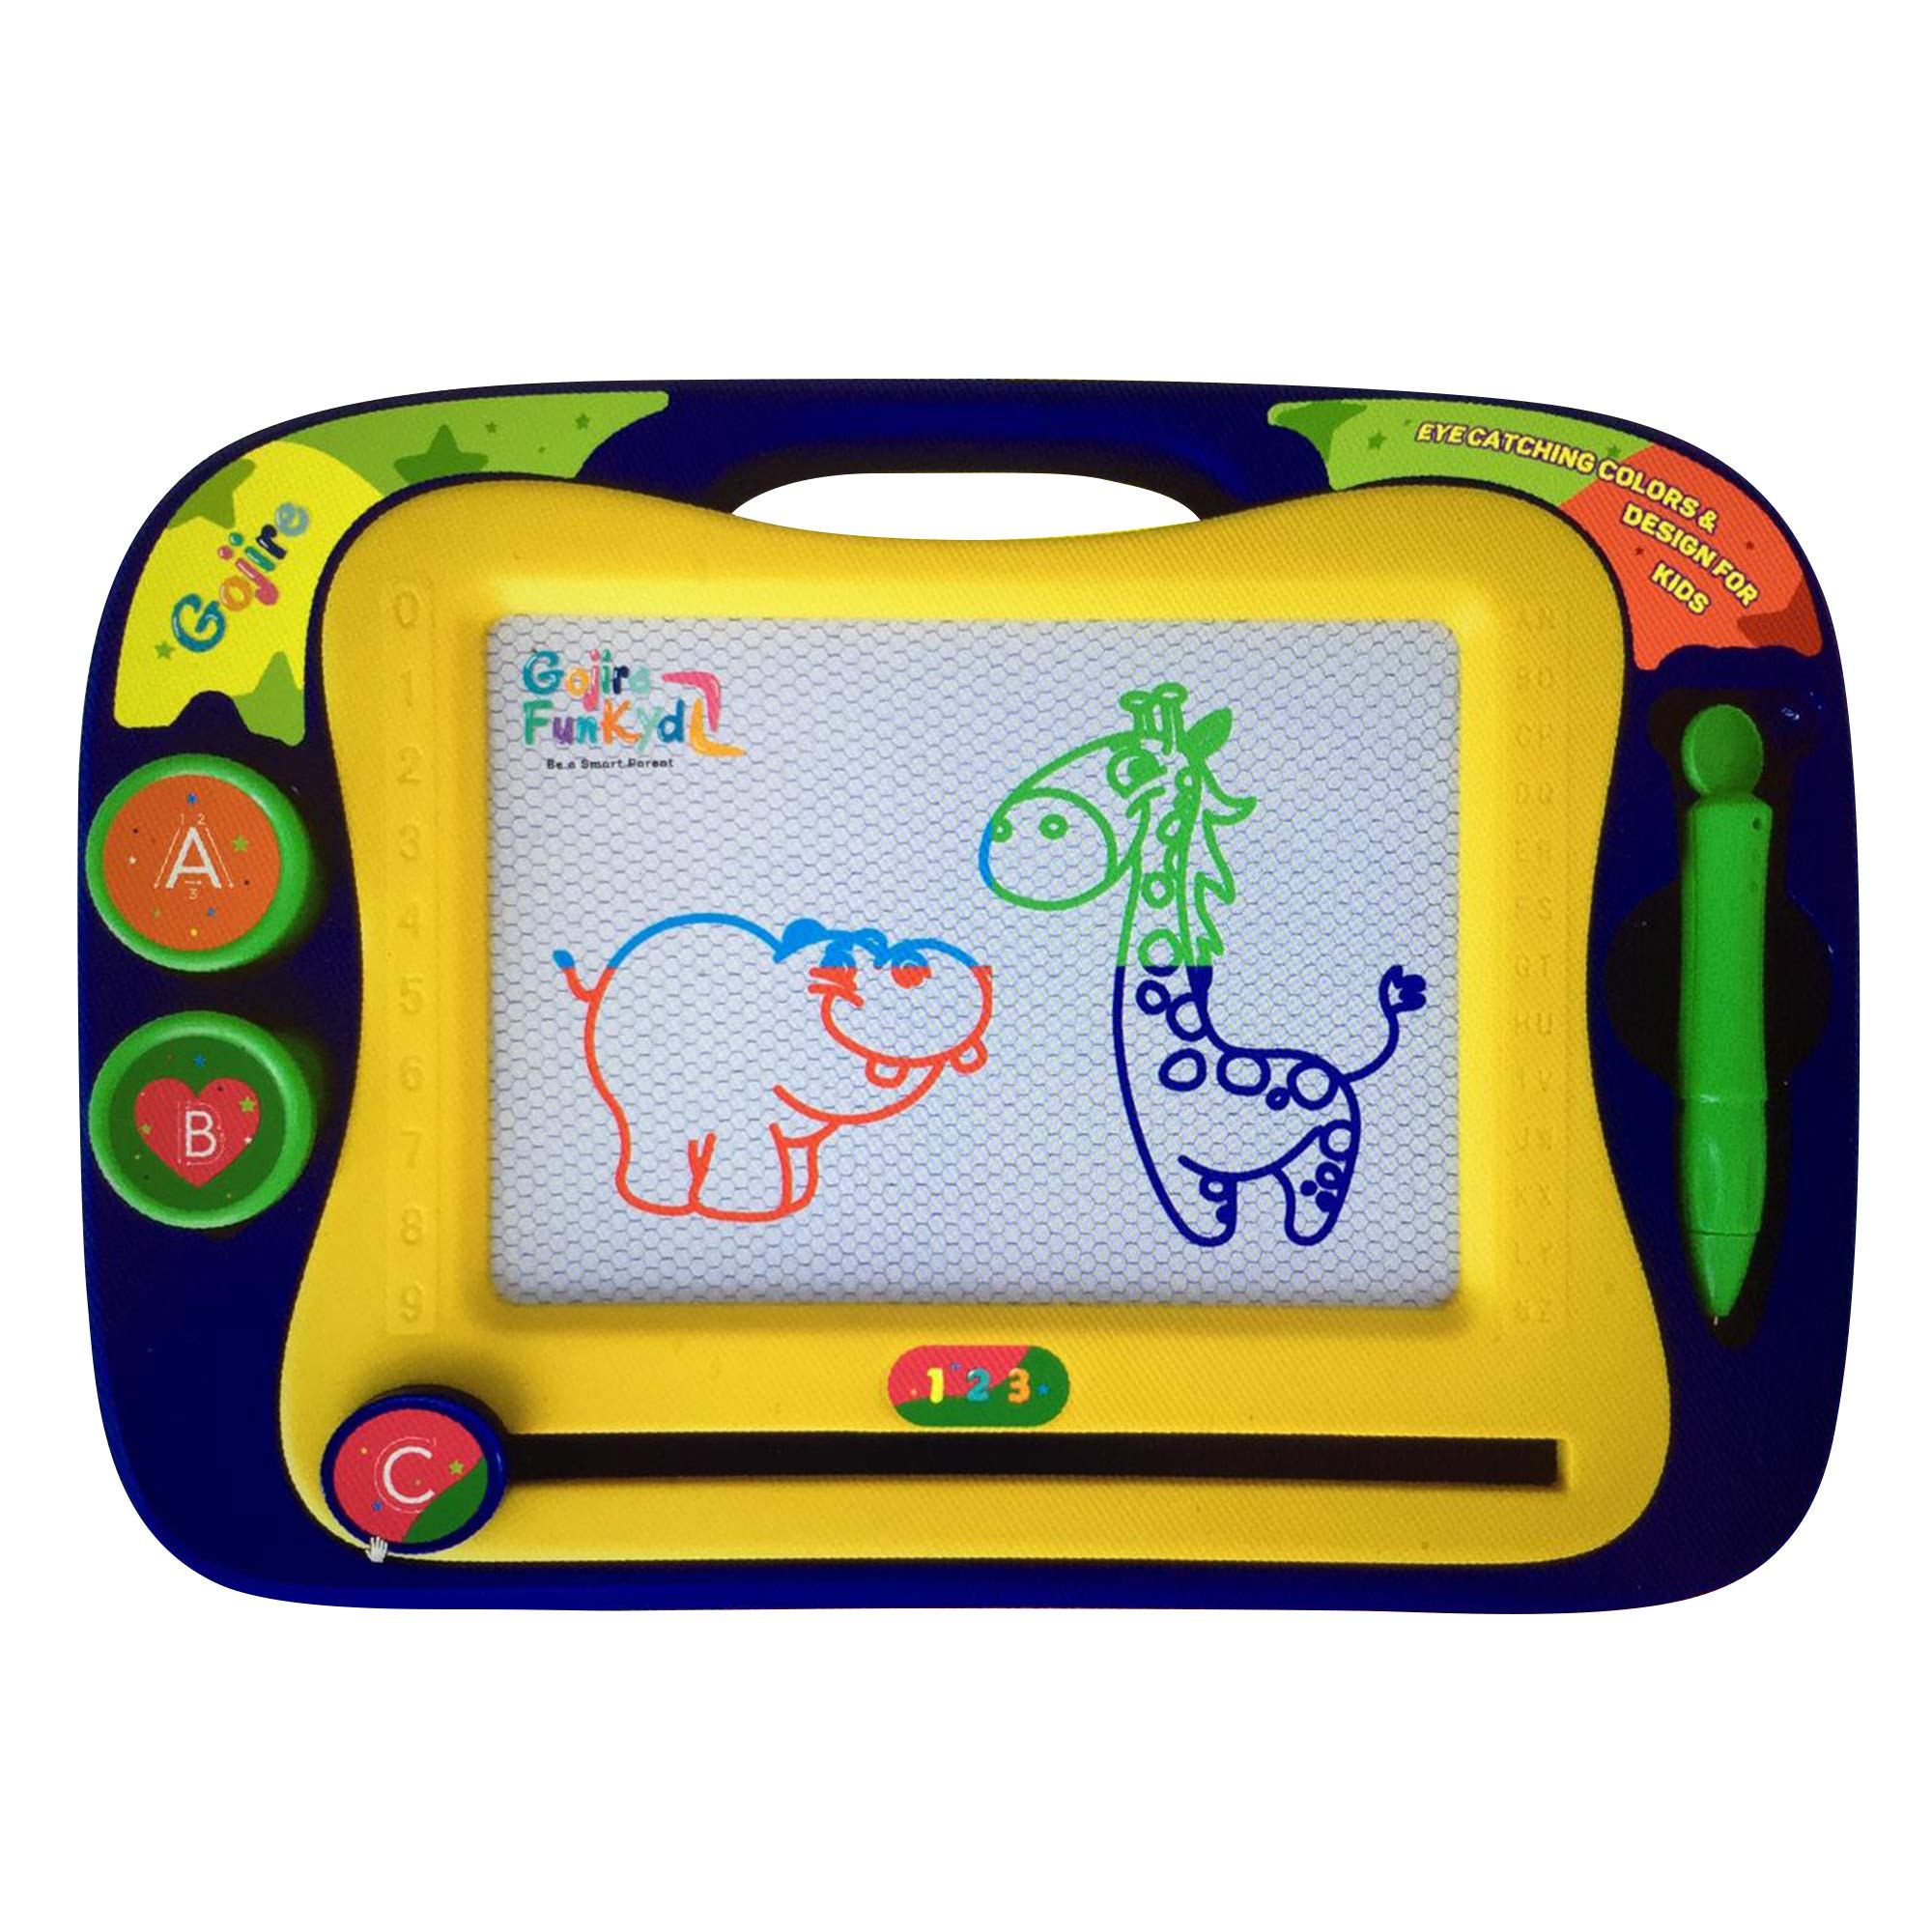 Check Out DoodleProducts On Amazon!